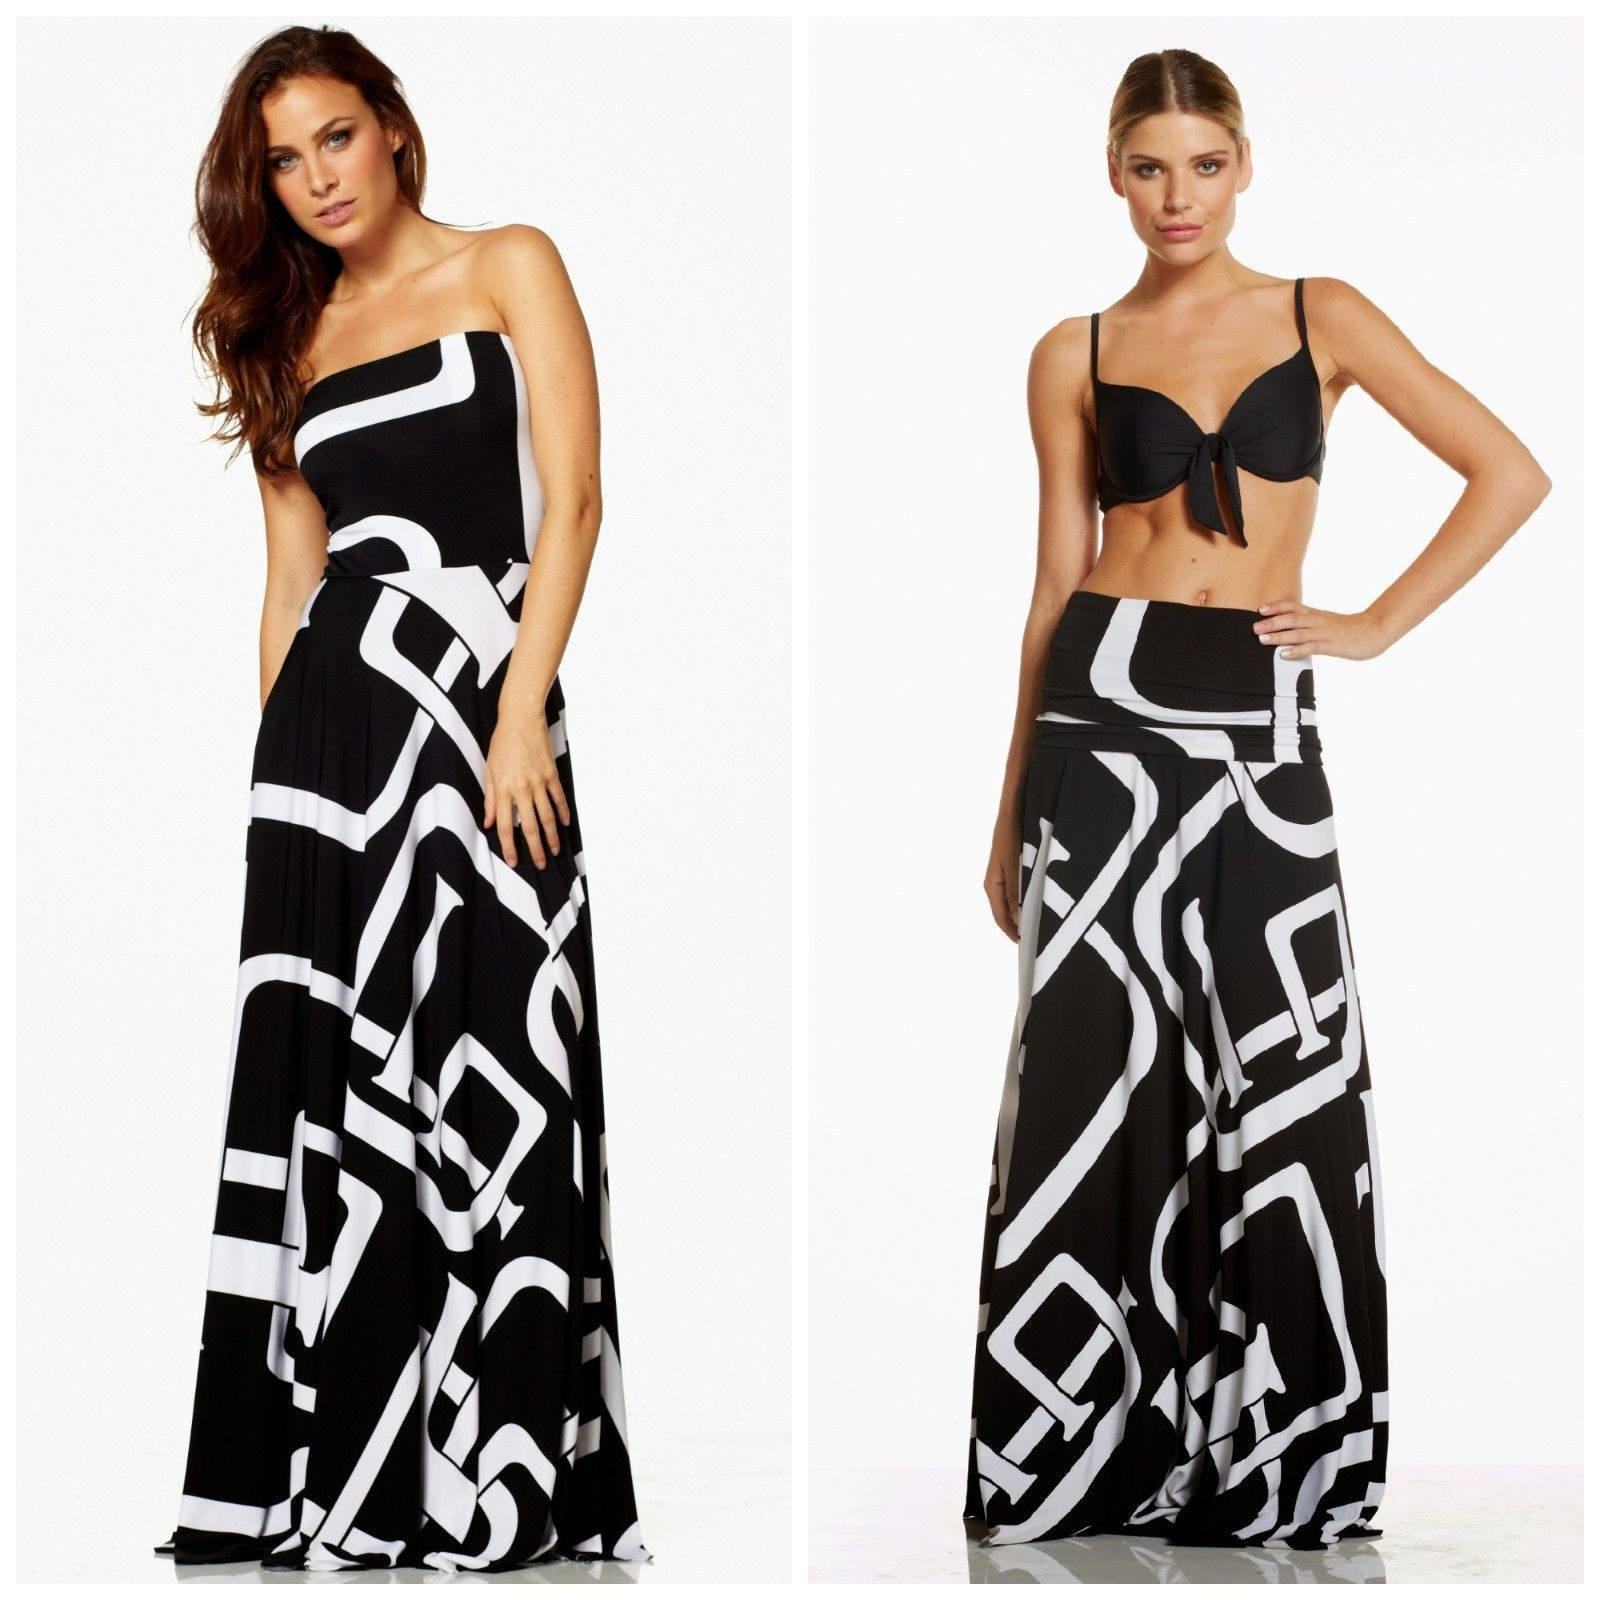 Black dress ebay - Details About Elan Usa Convertible Strapless Maxi Dress Or Skirt Black White Buckle Print 89